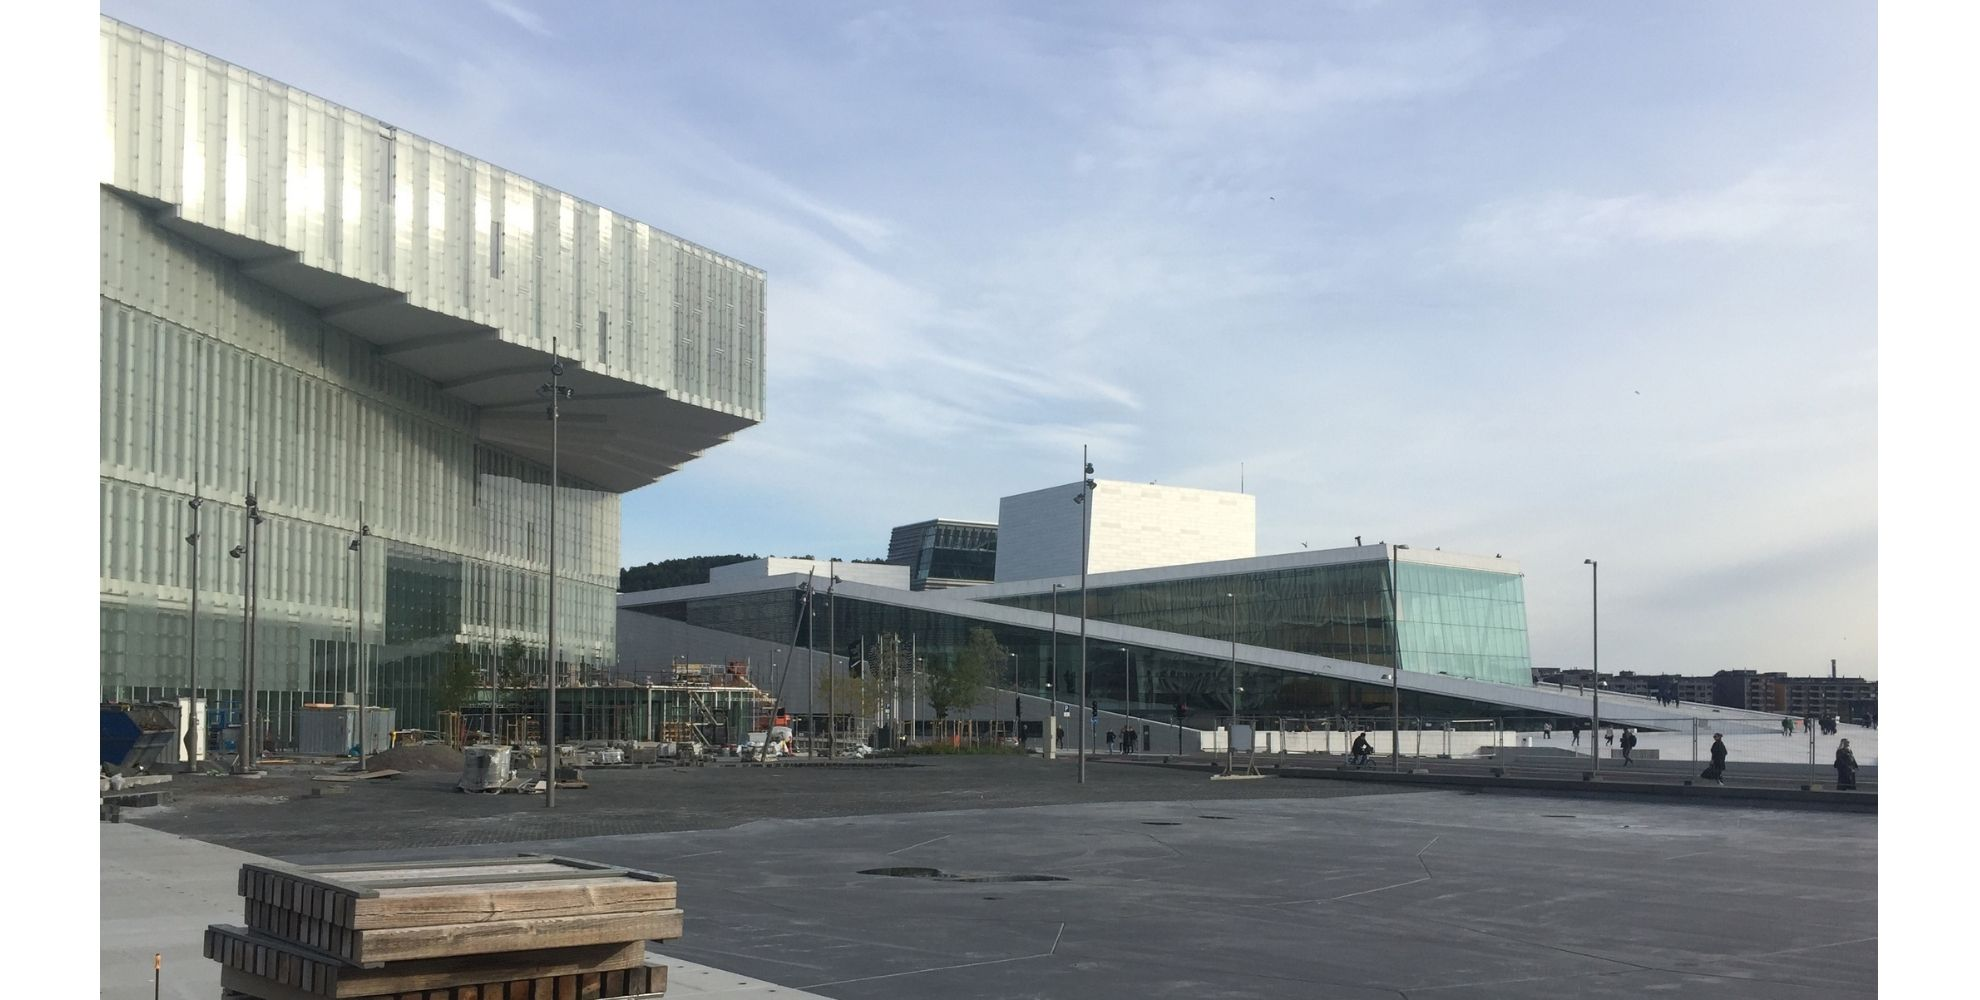 The Norwegian National Opera and Ballet and Oslo Main Library. Public Spaces Examples